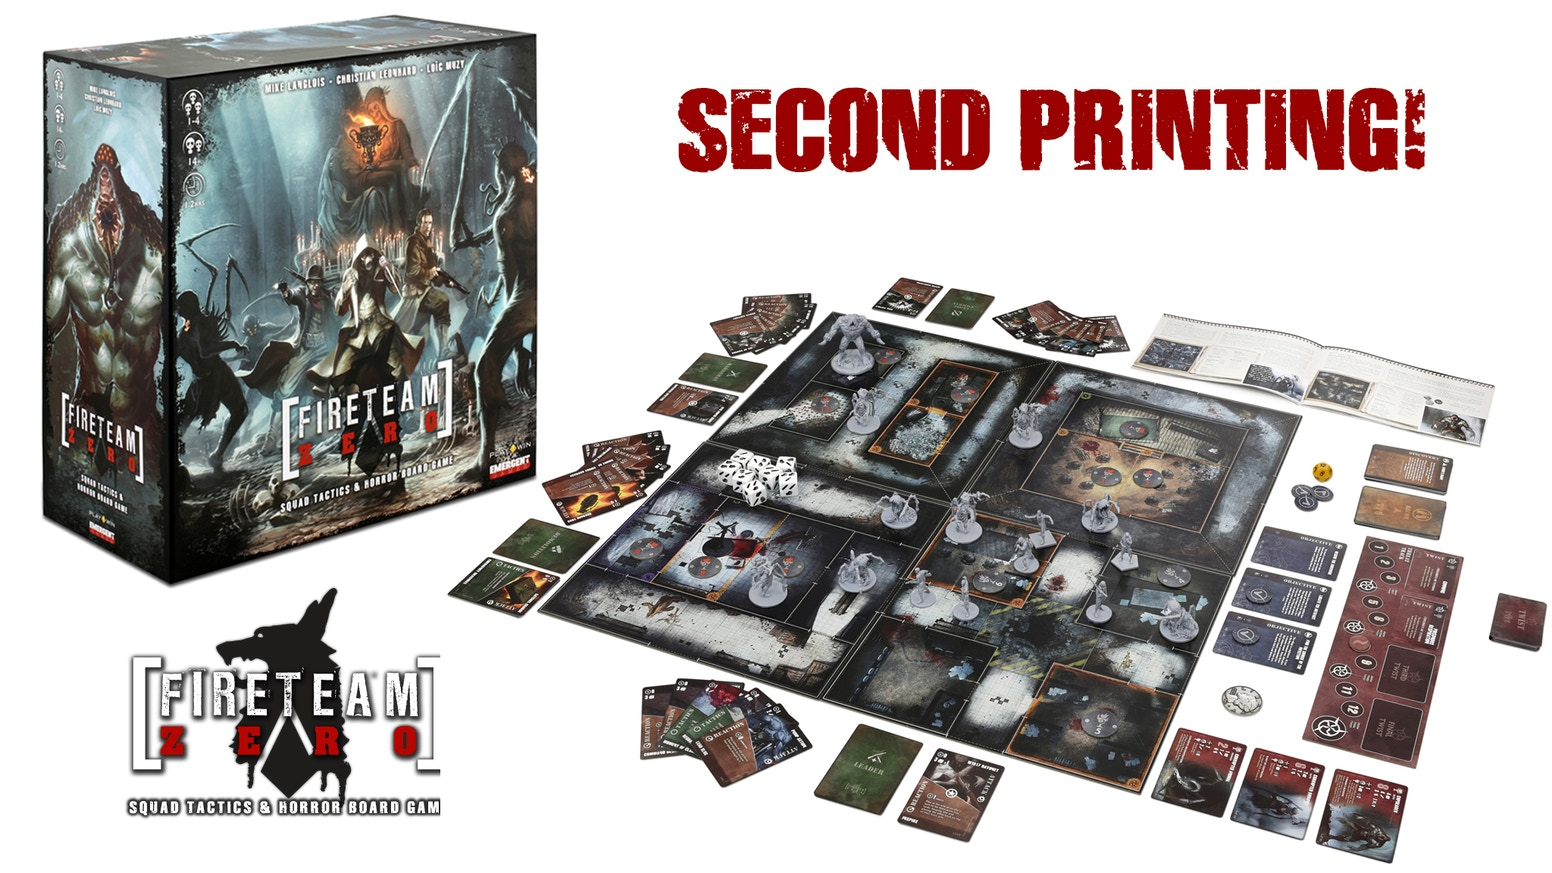 Fireteam Zero is an award-winning co-op miniatures board game featuring nail-biting tactical combat against world-devouring evil.